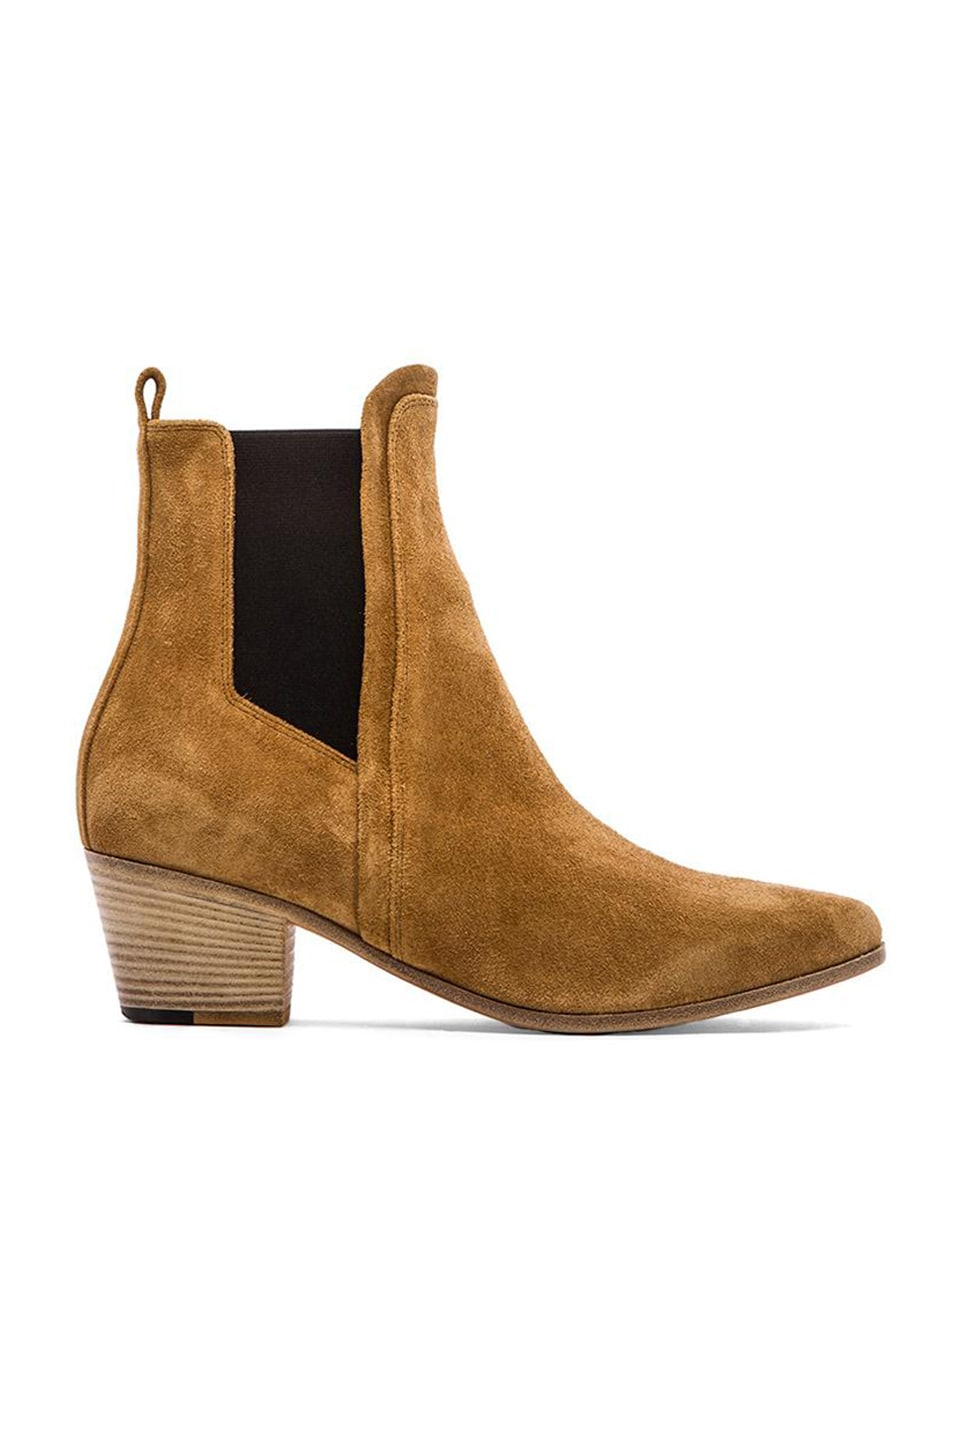 IRO Kate Bootie in Camel